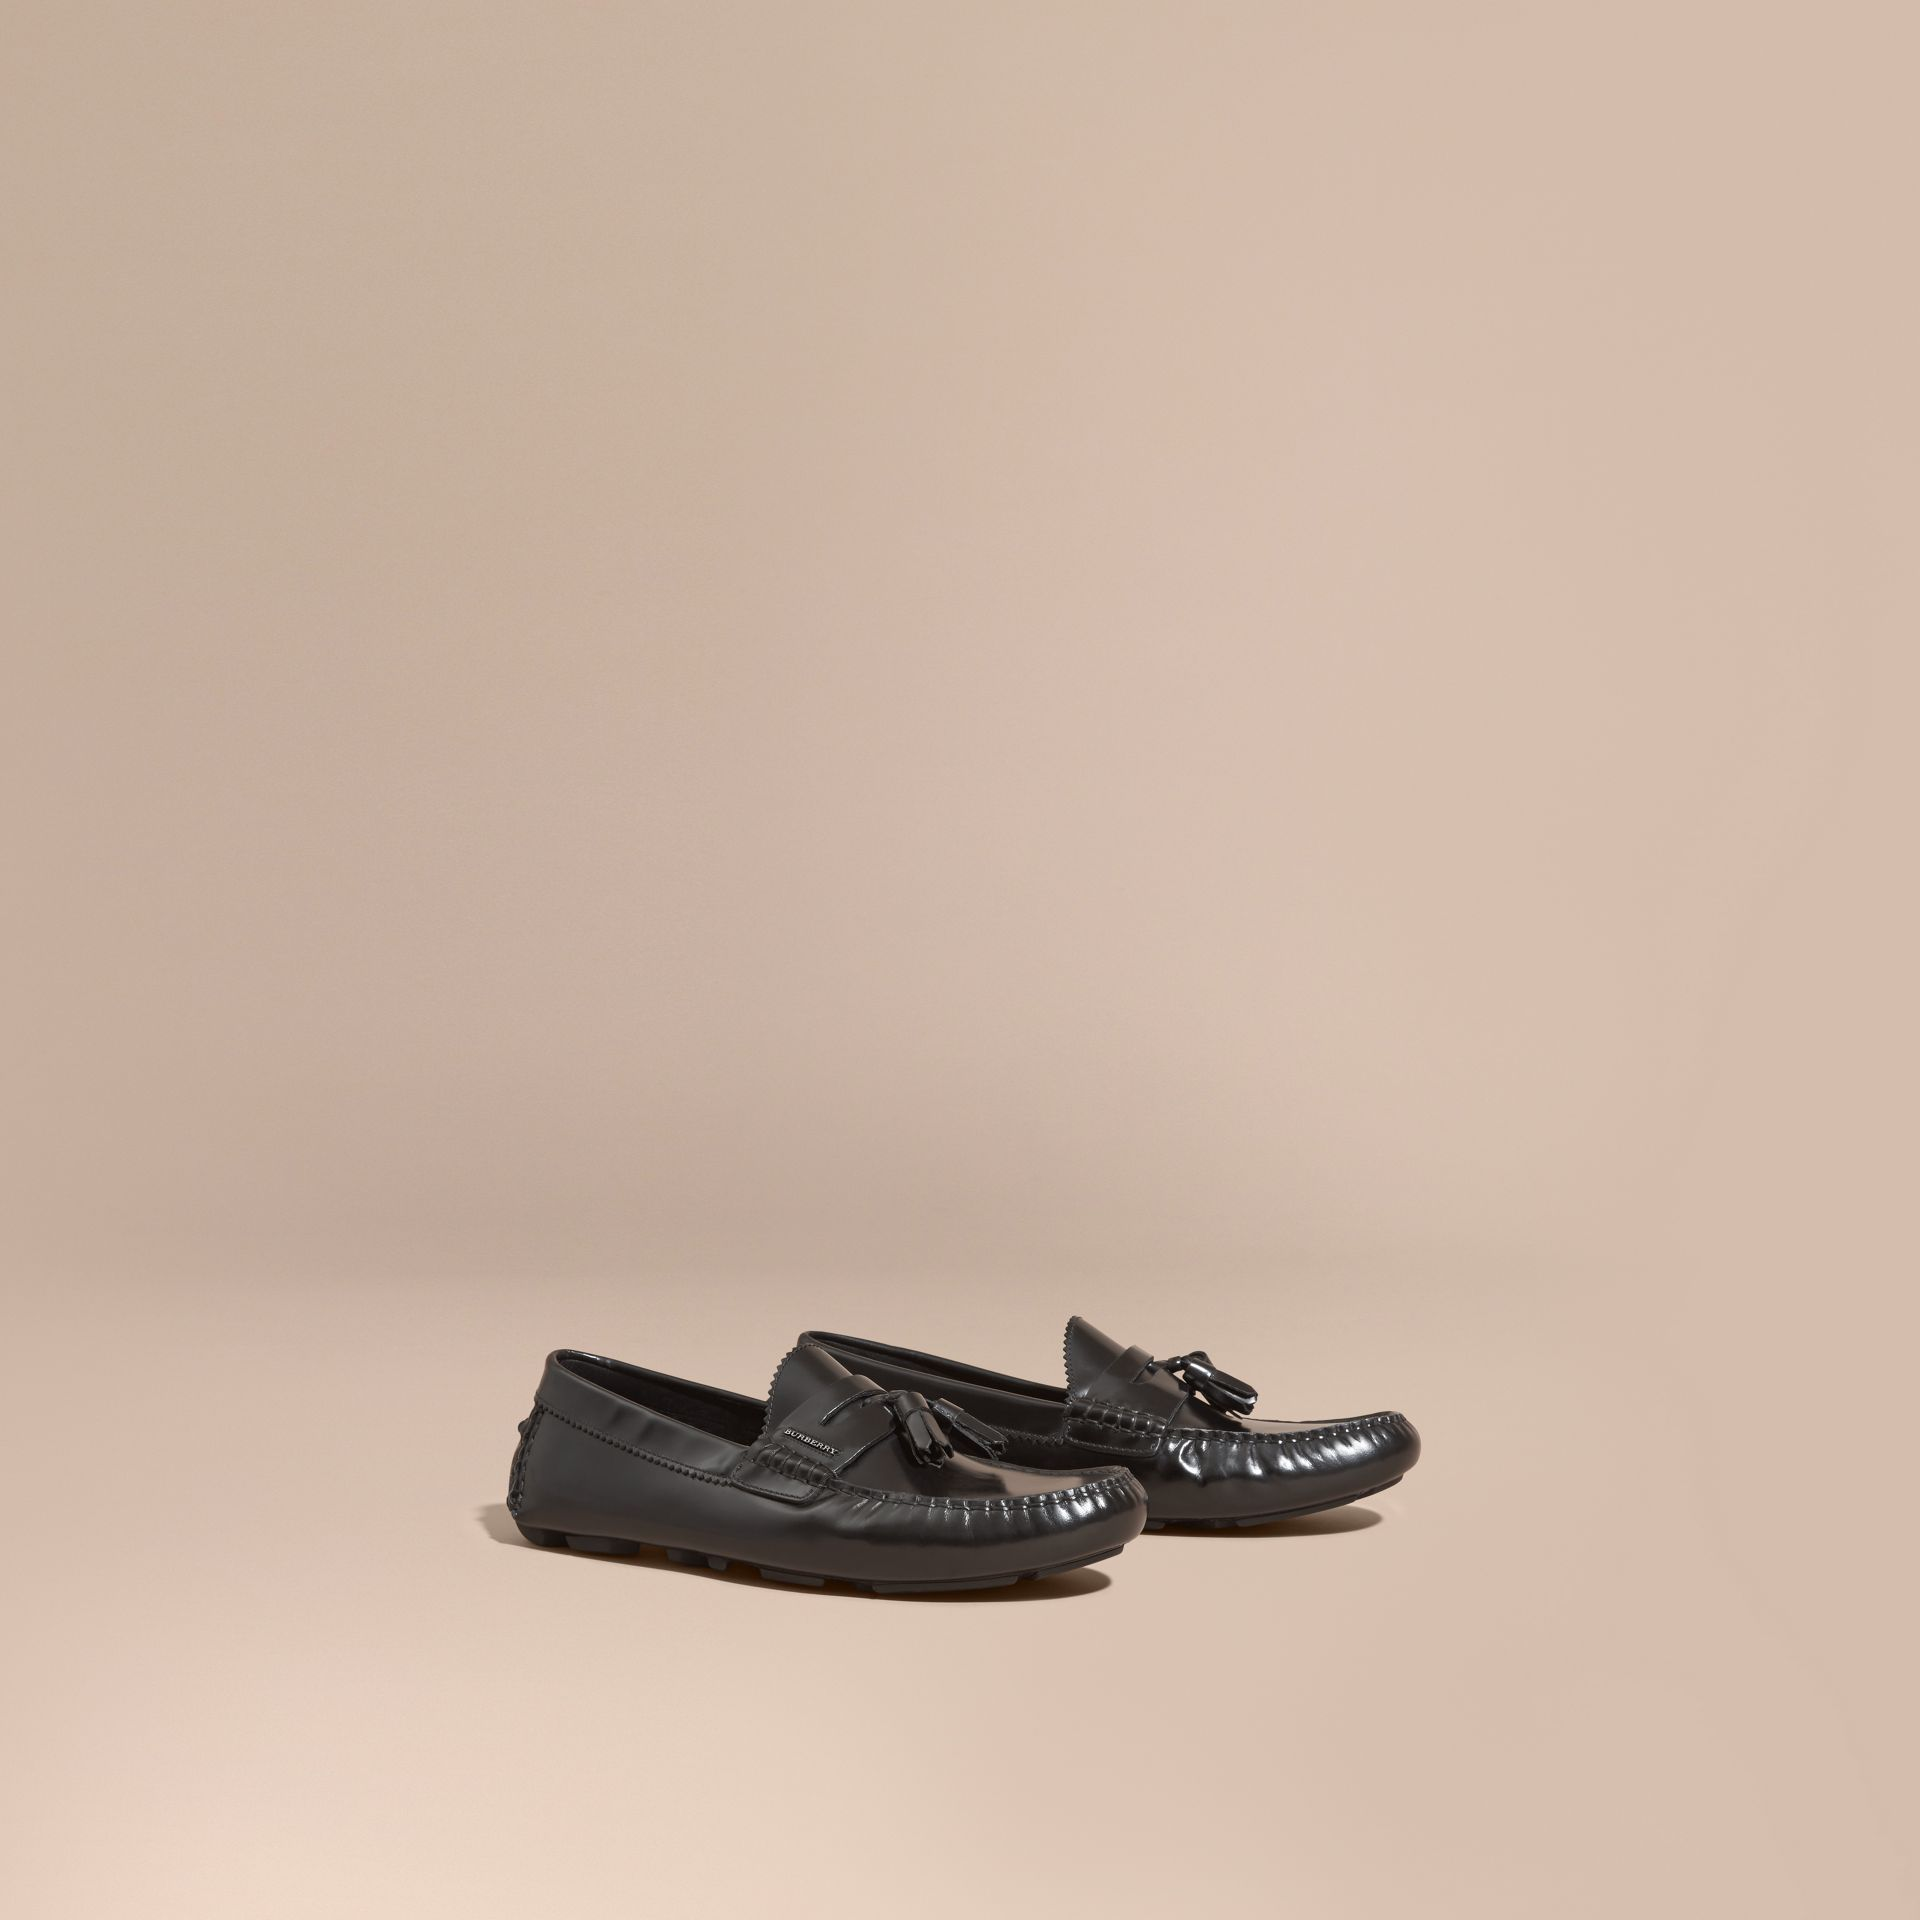 Black Tasselled Polished Leather Loafers Black - gallery image 1